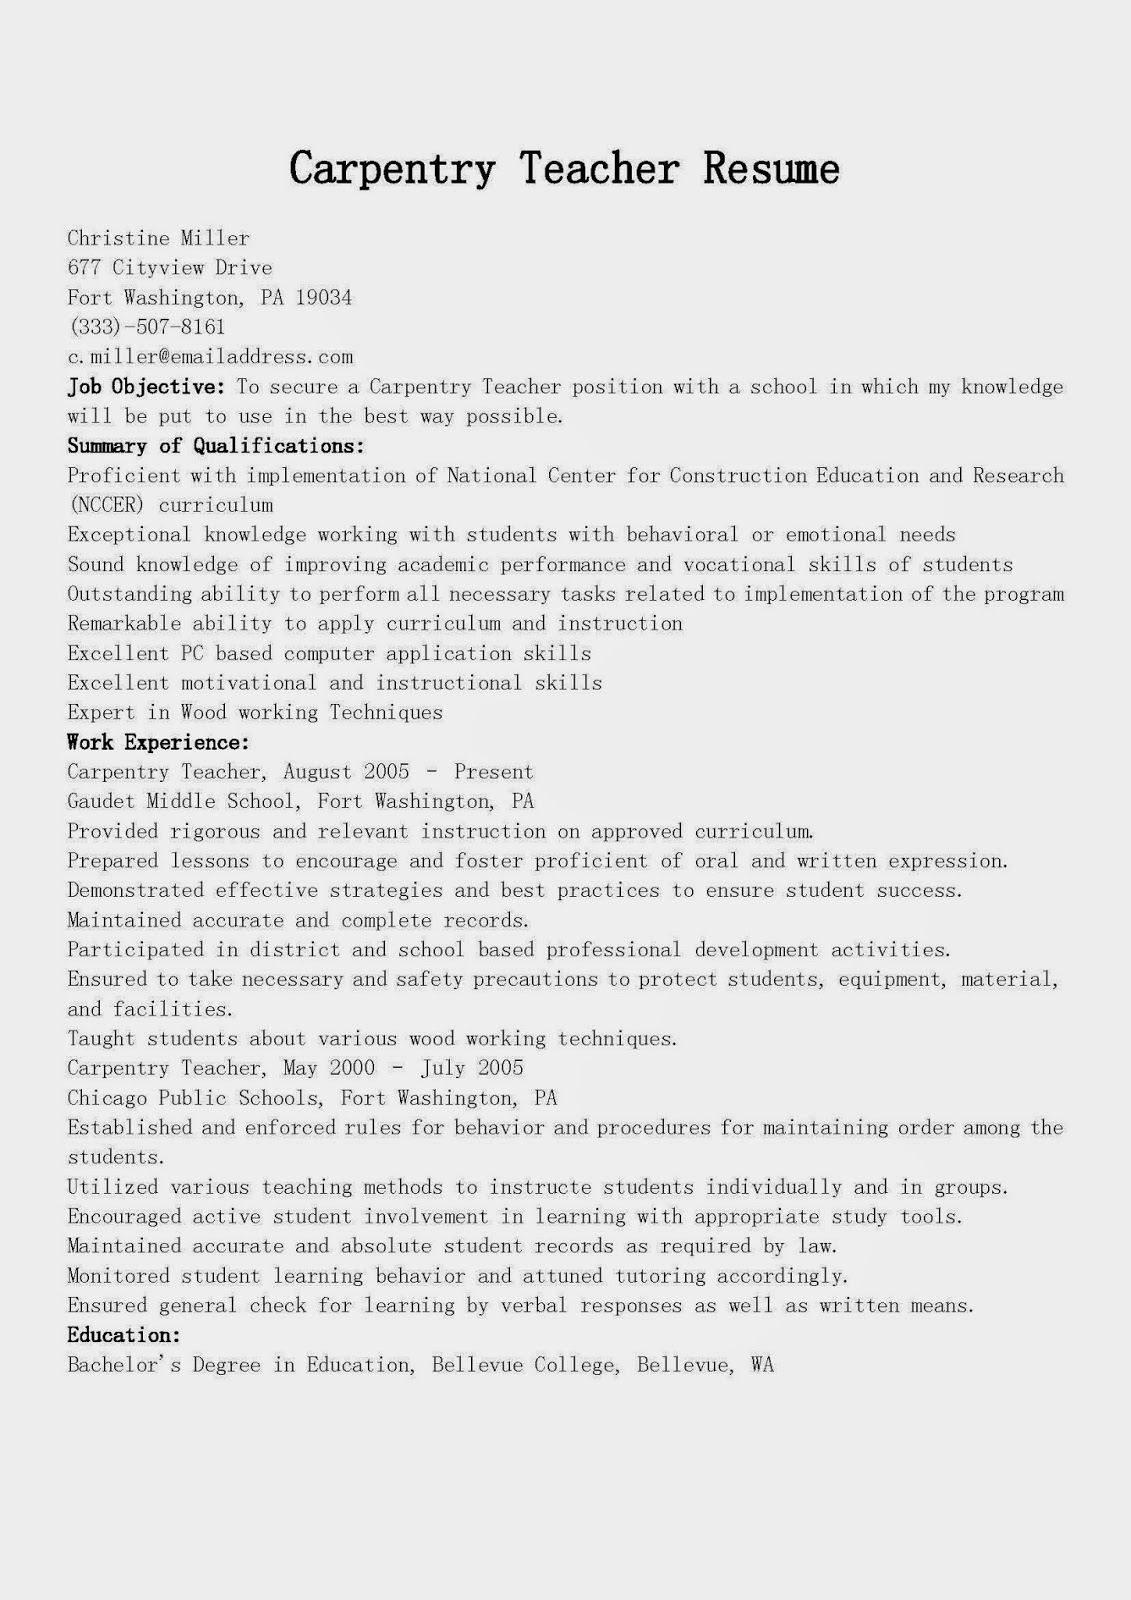 Carpentry Resume Resume Samples Carpentry Teacher Resume Sample